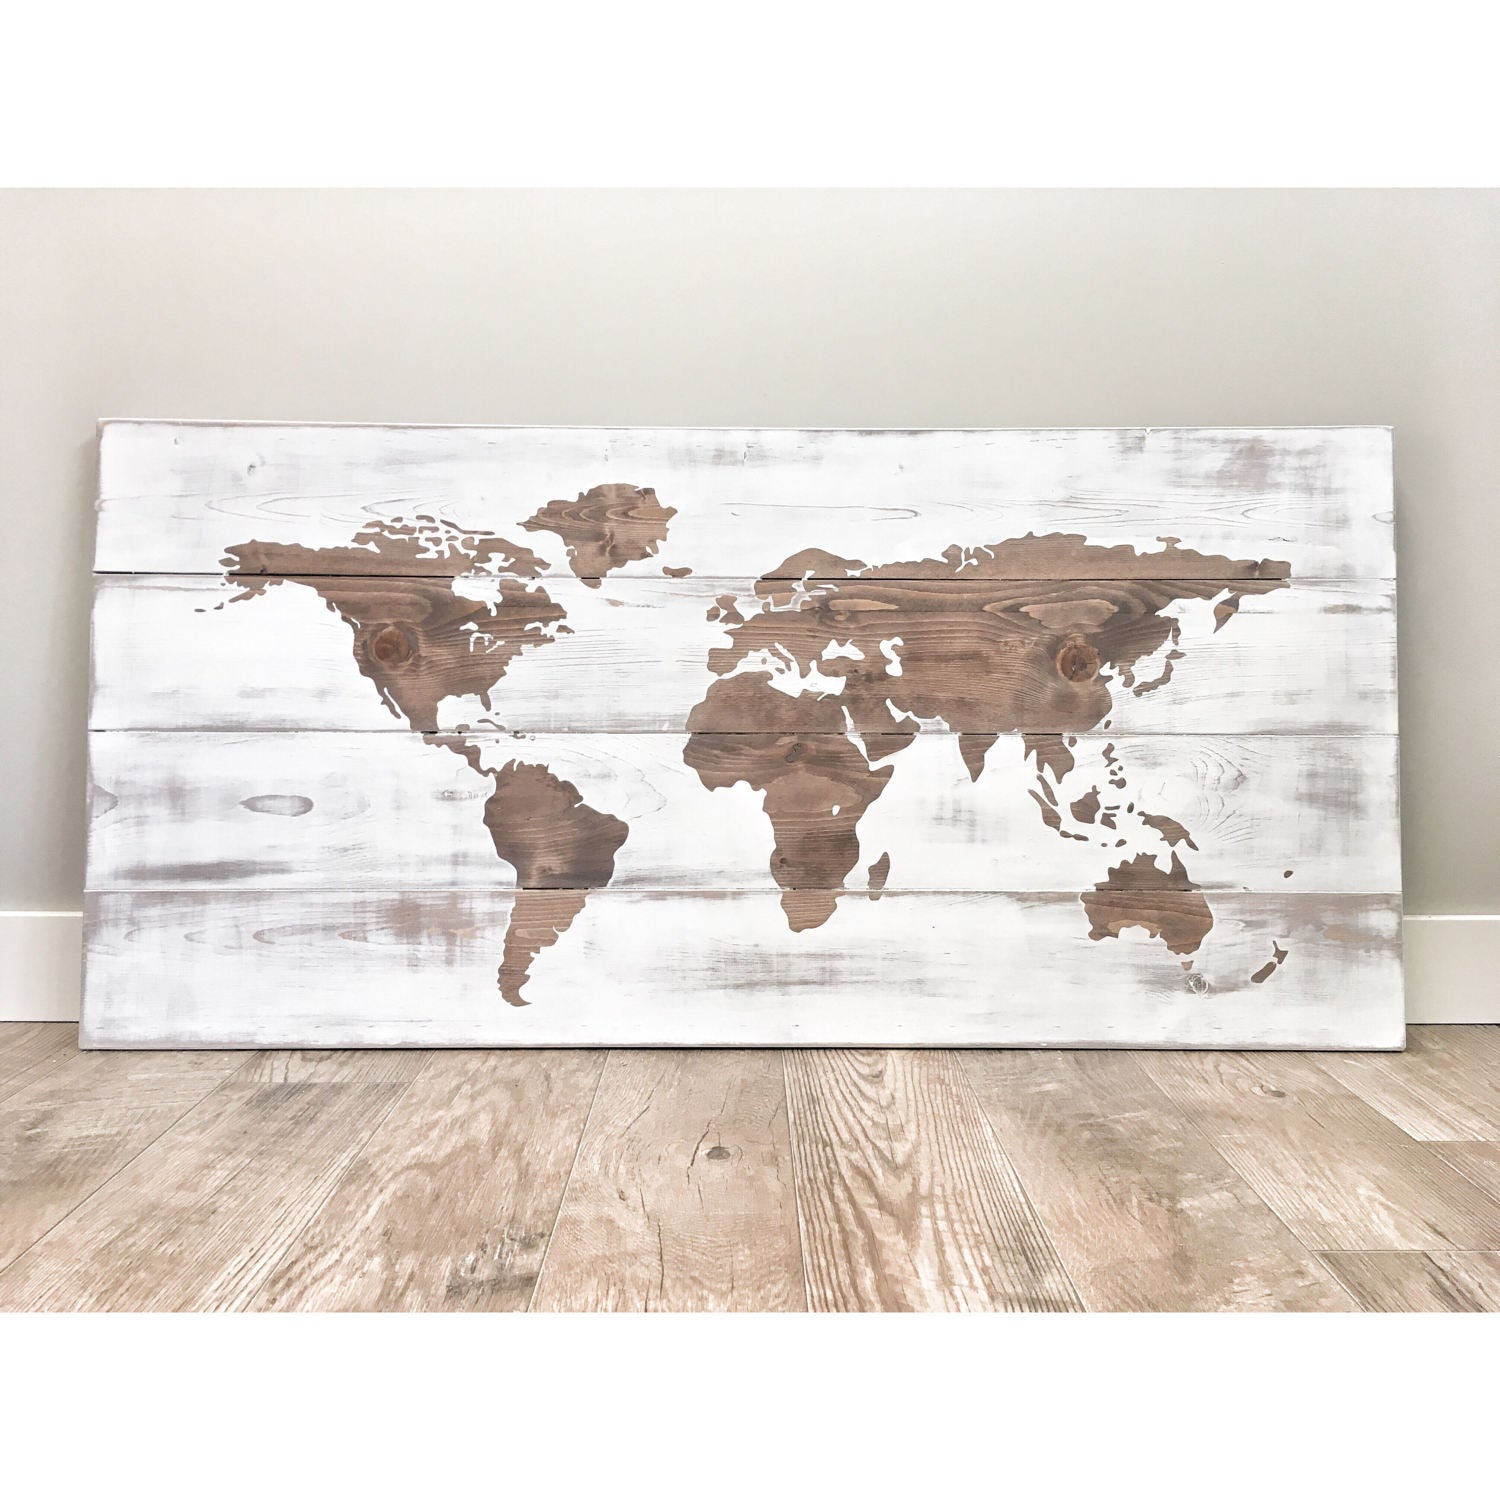 Rustic wood world map rustic decor farmhouse decor rustic nursery rustic wood world map rustic decor farmhouse decor rustic nursery decor wall decor wooden white world map 46 x 22 gumiabroncs Image collections